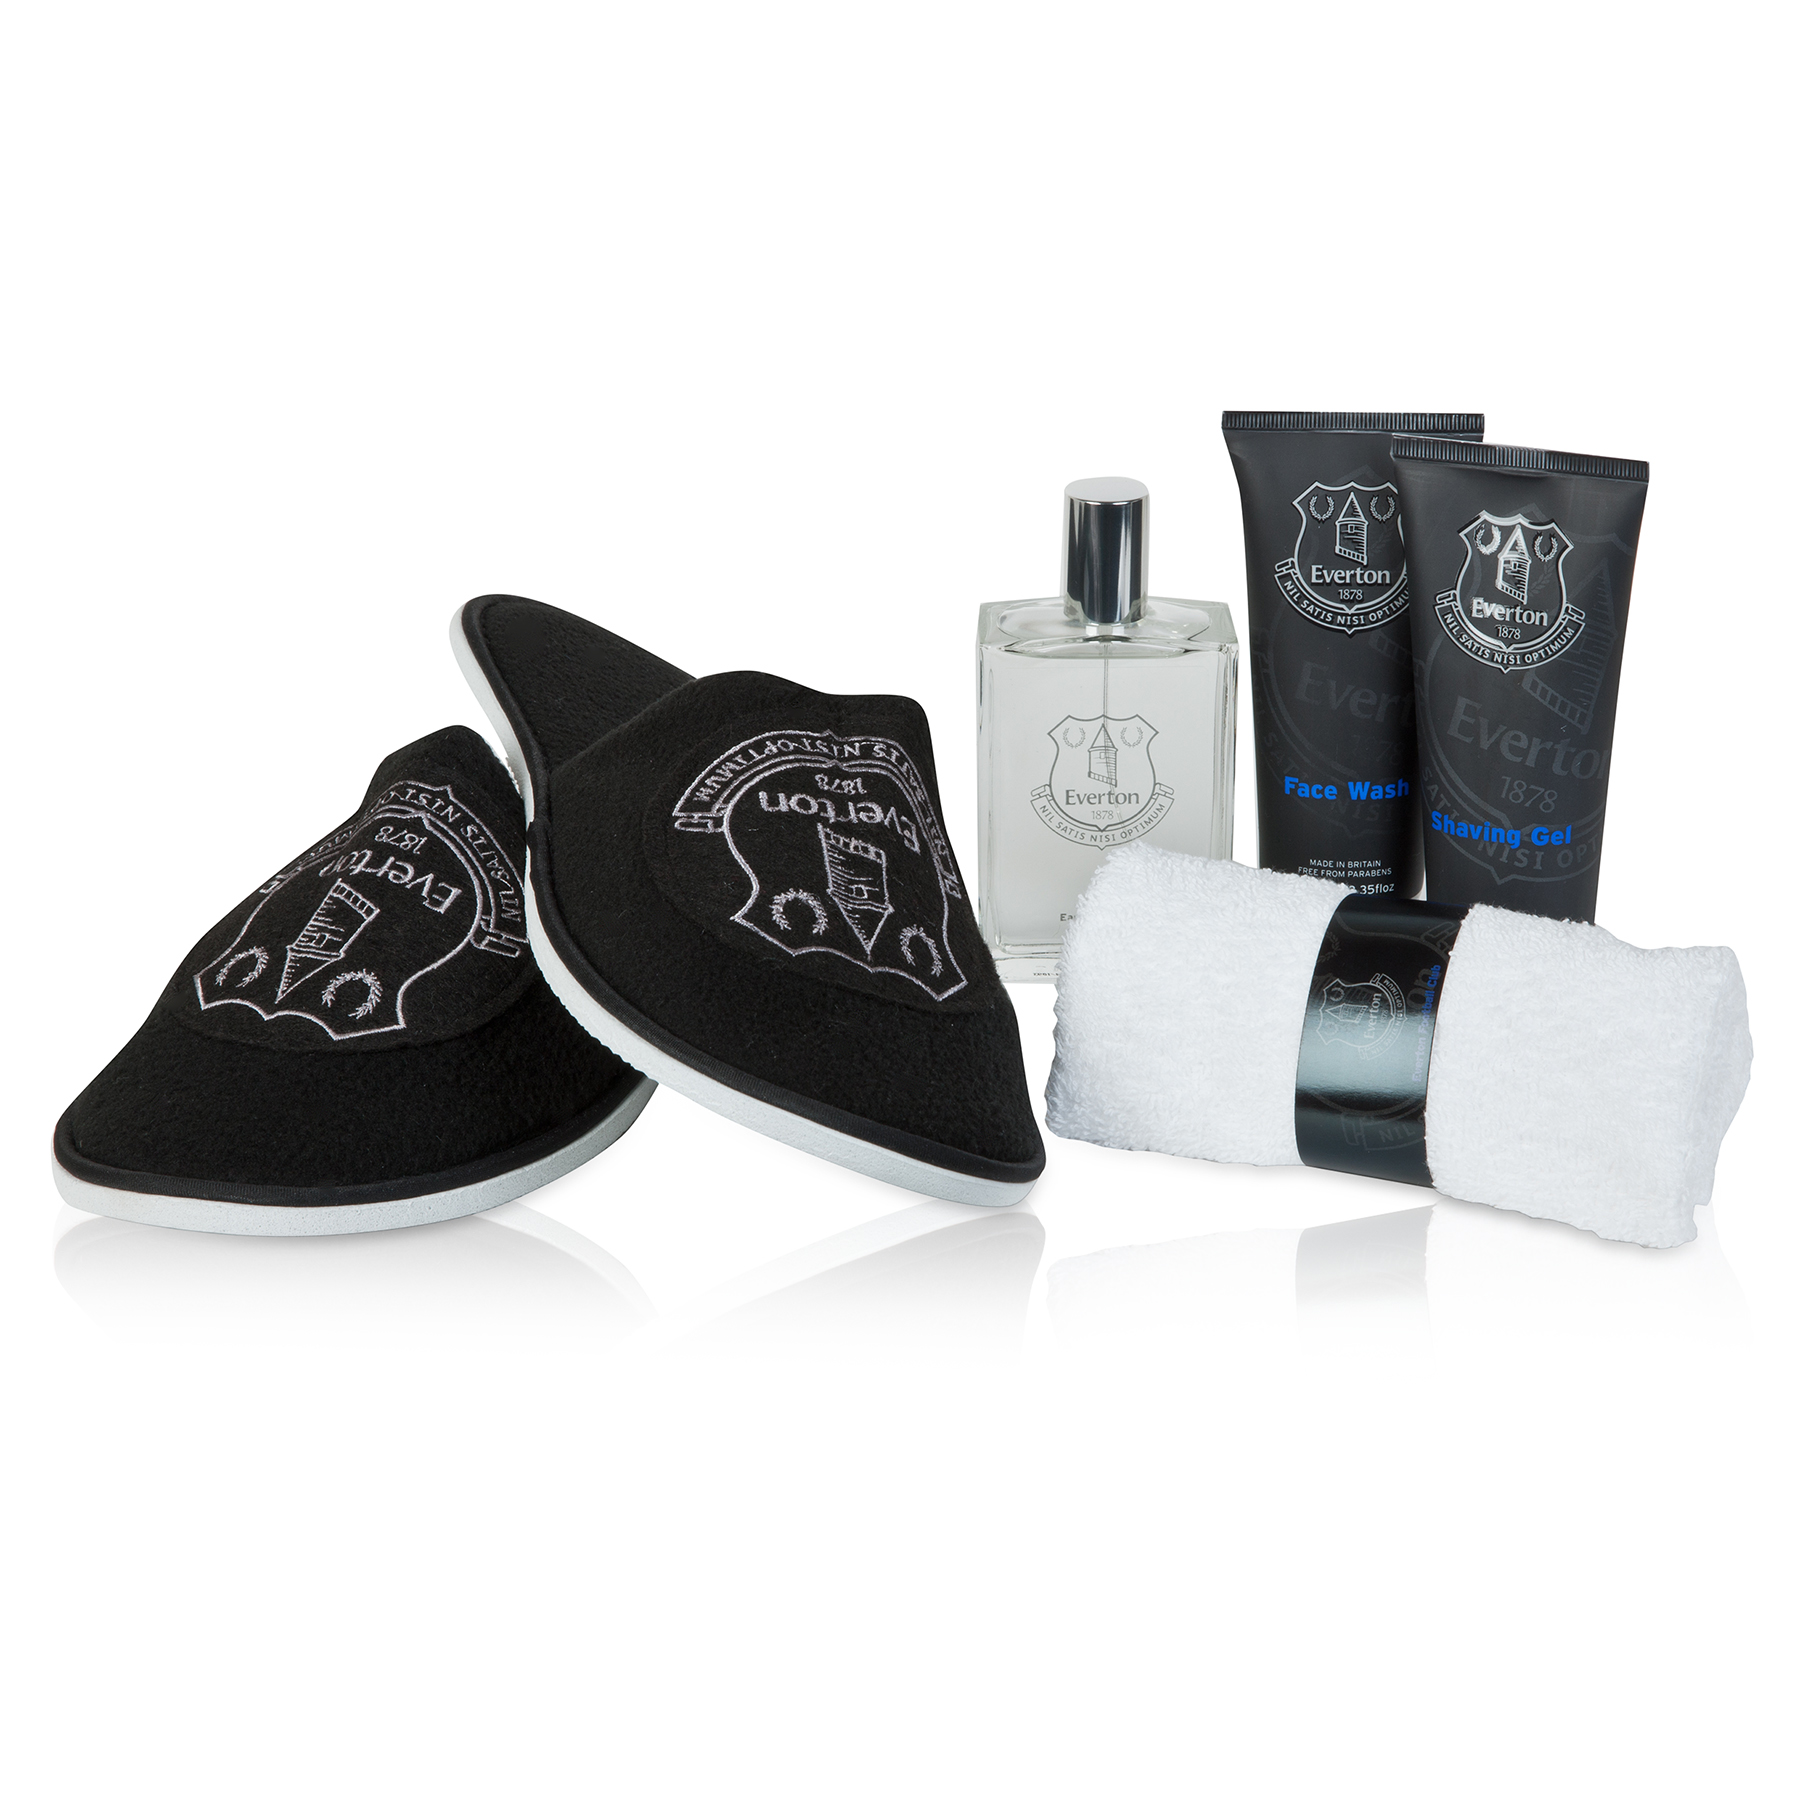 Everton Luxury Gift Set